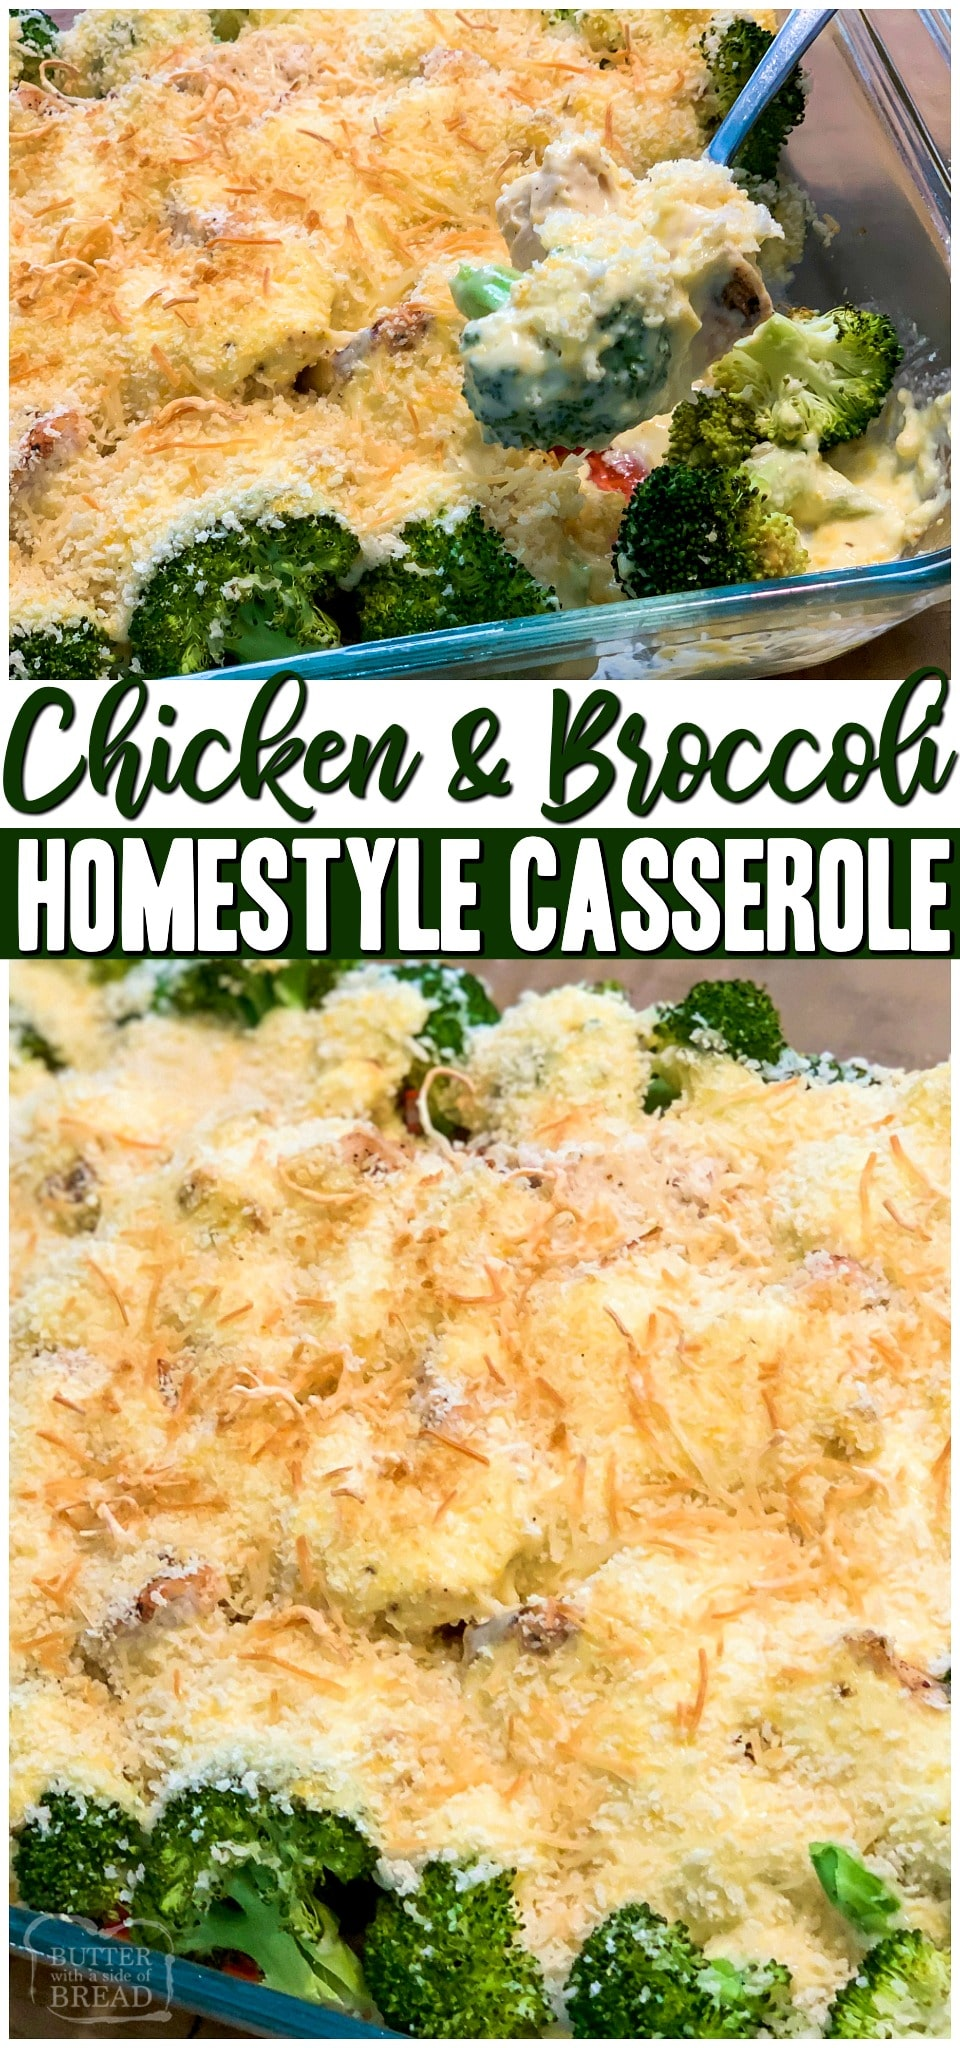 Chicken and Broccoli Casserole~ we're sharing our family recipe that's been passed down generations! Creamy cheese sauce mixed with delicious tender chicken and broccoli topped with buttery bread crumbs make it the perfect comfort food!